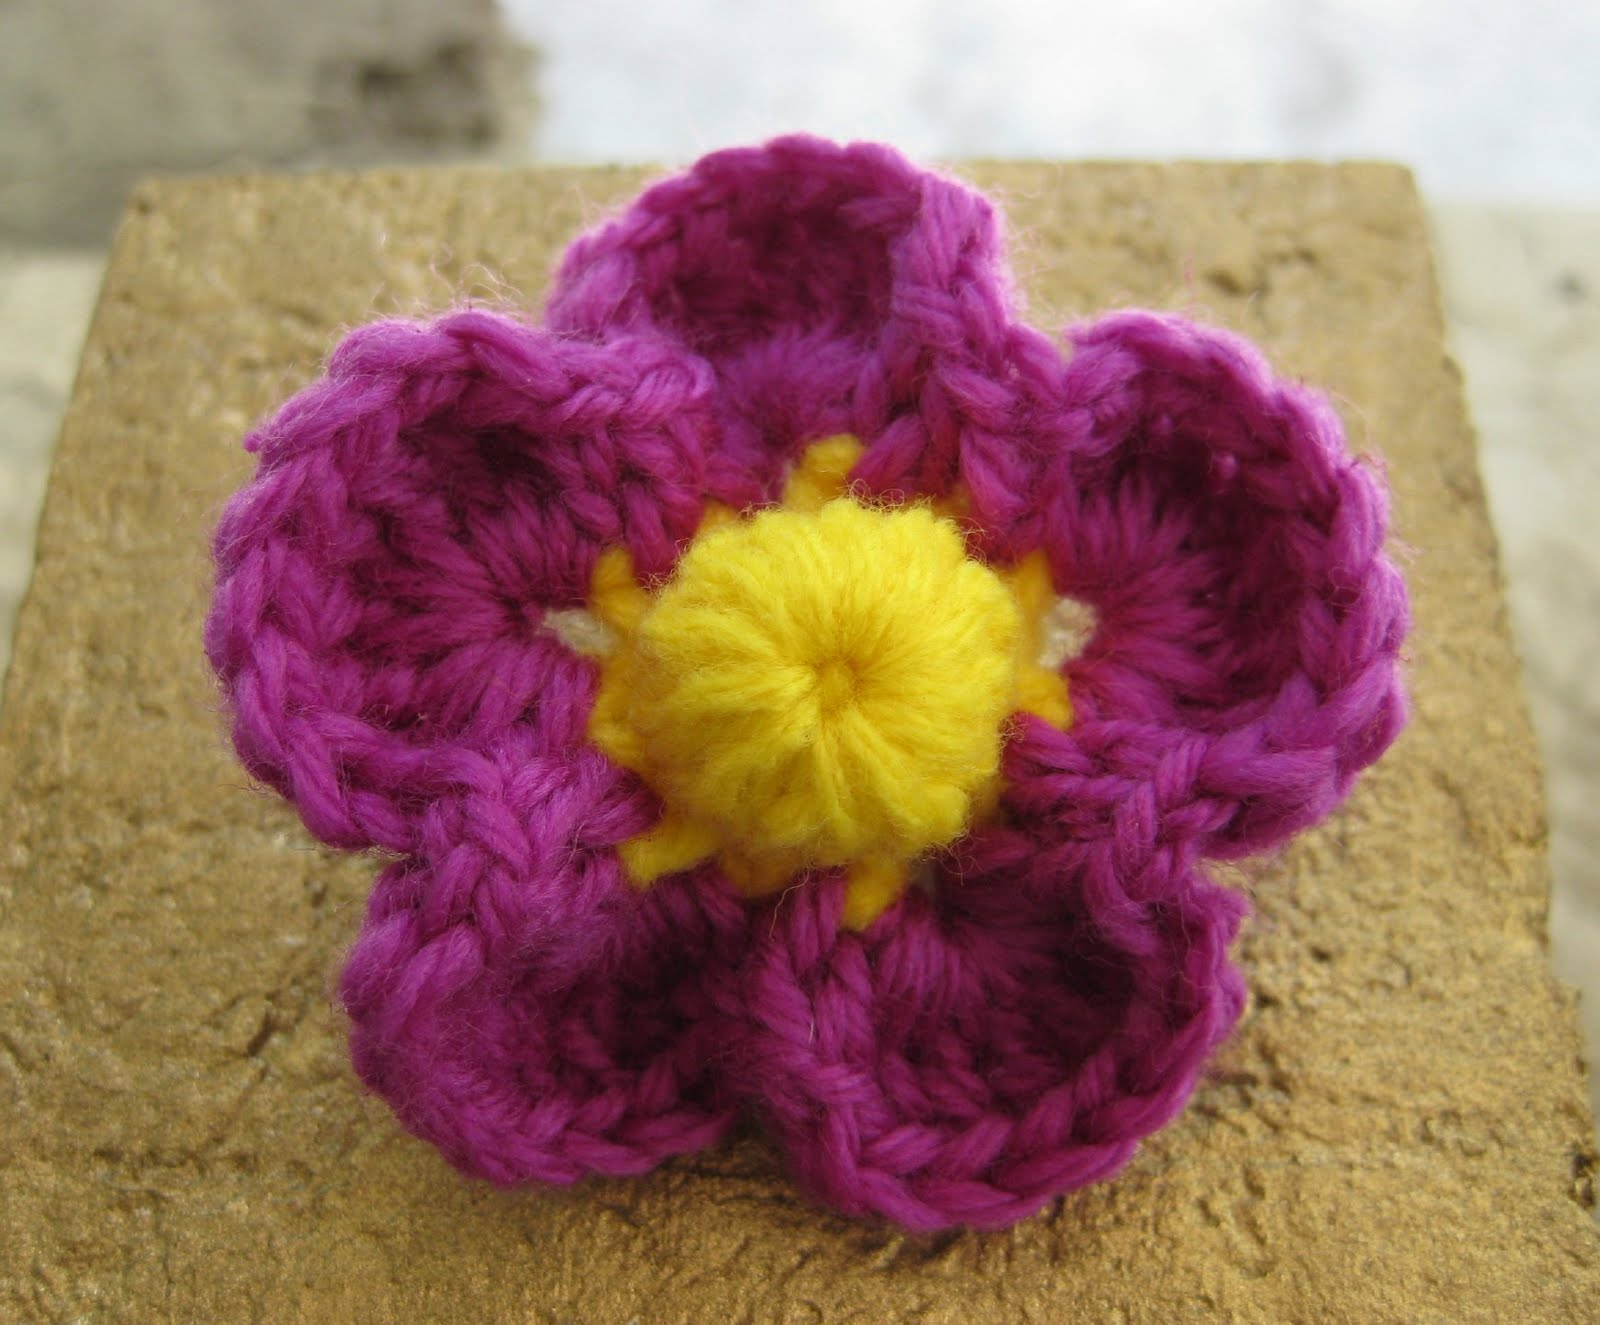 Crochet Patterns Instructions : FREE CROCHET PATTERNS AND INSTRUCTIONS Crochet Tutorials